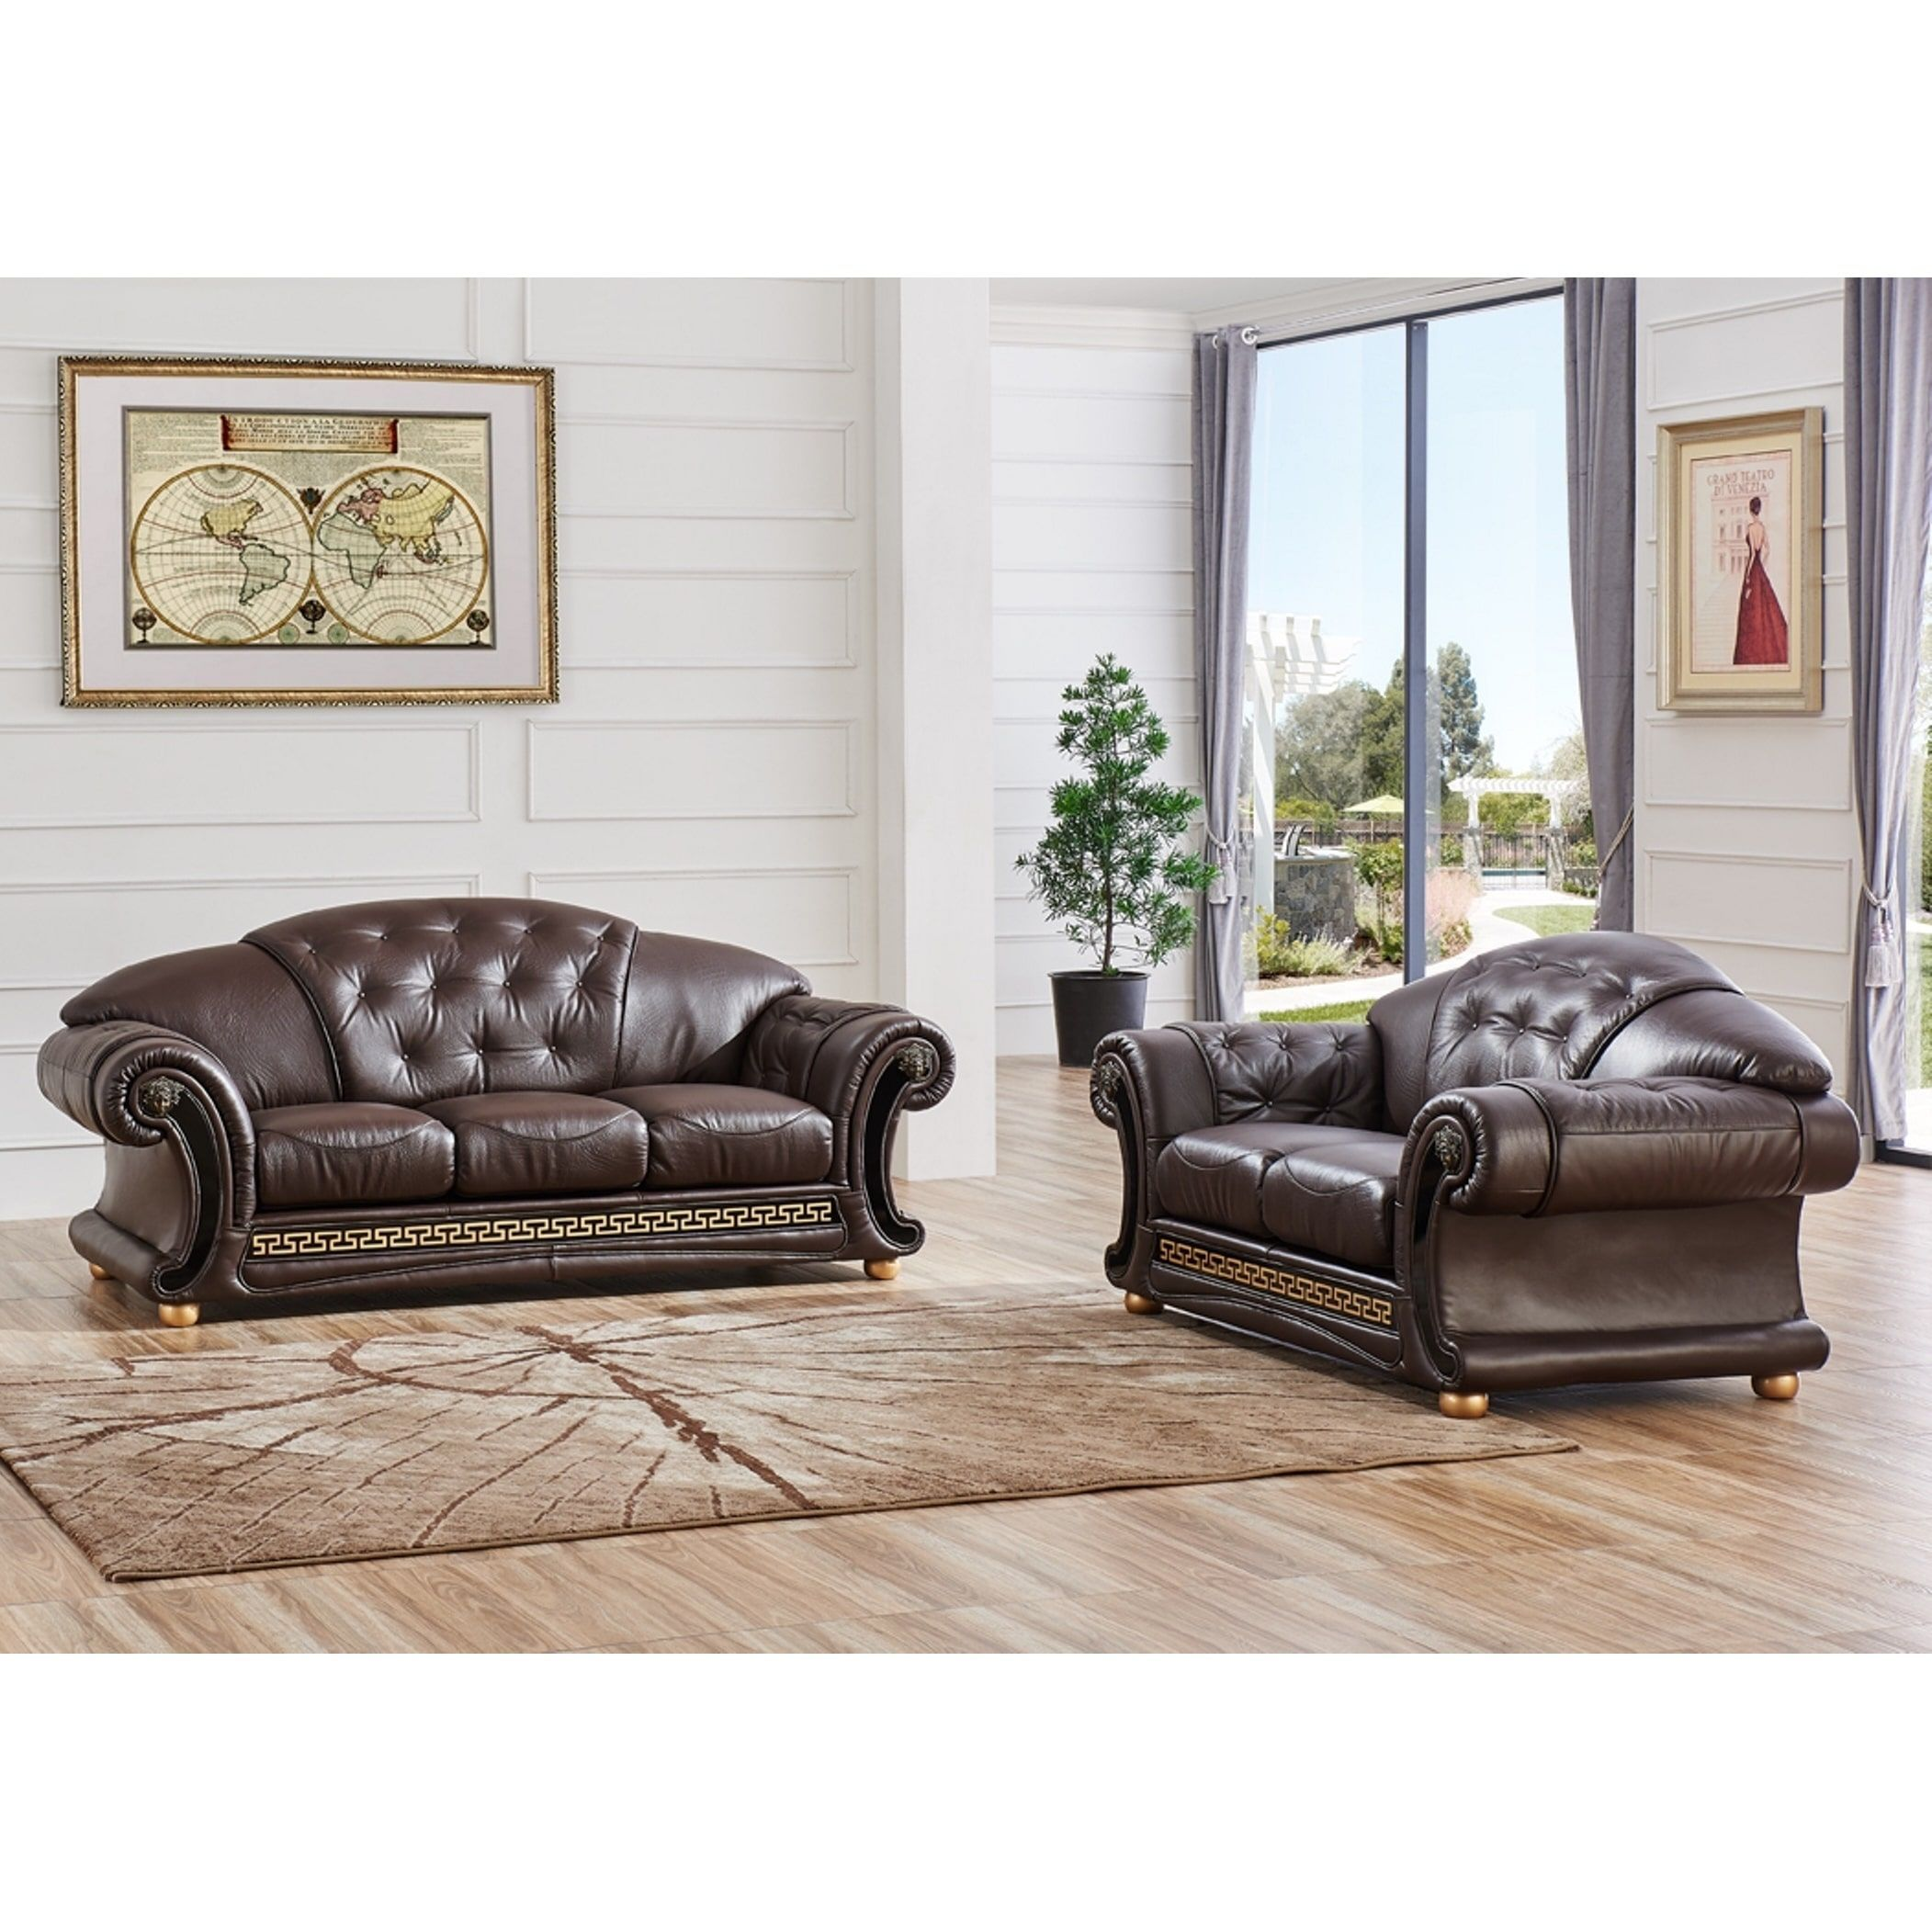 Luca Home 2 Piece Split Brown Leather Living Room Set (Brown Half Leather  2PC SET) Part 93